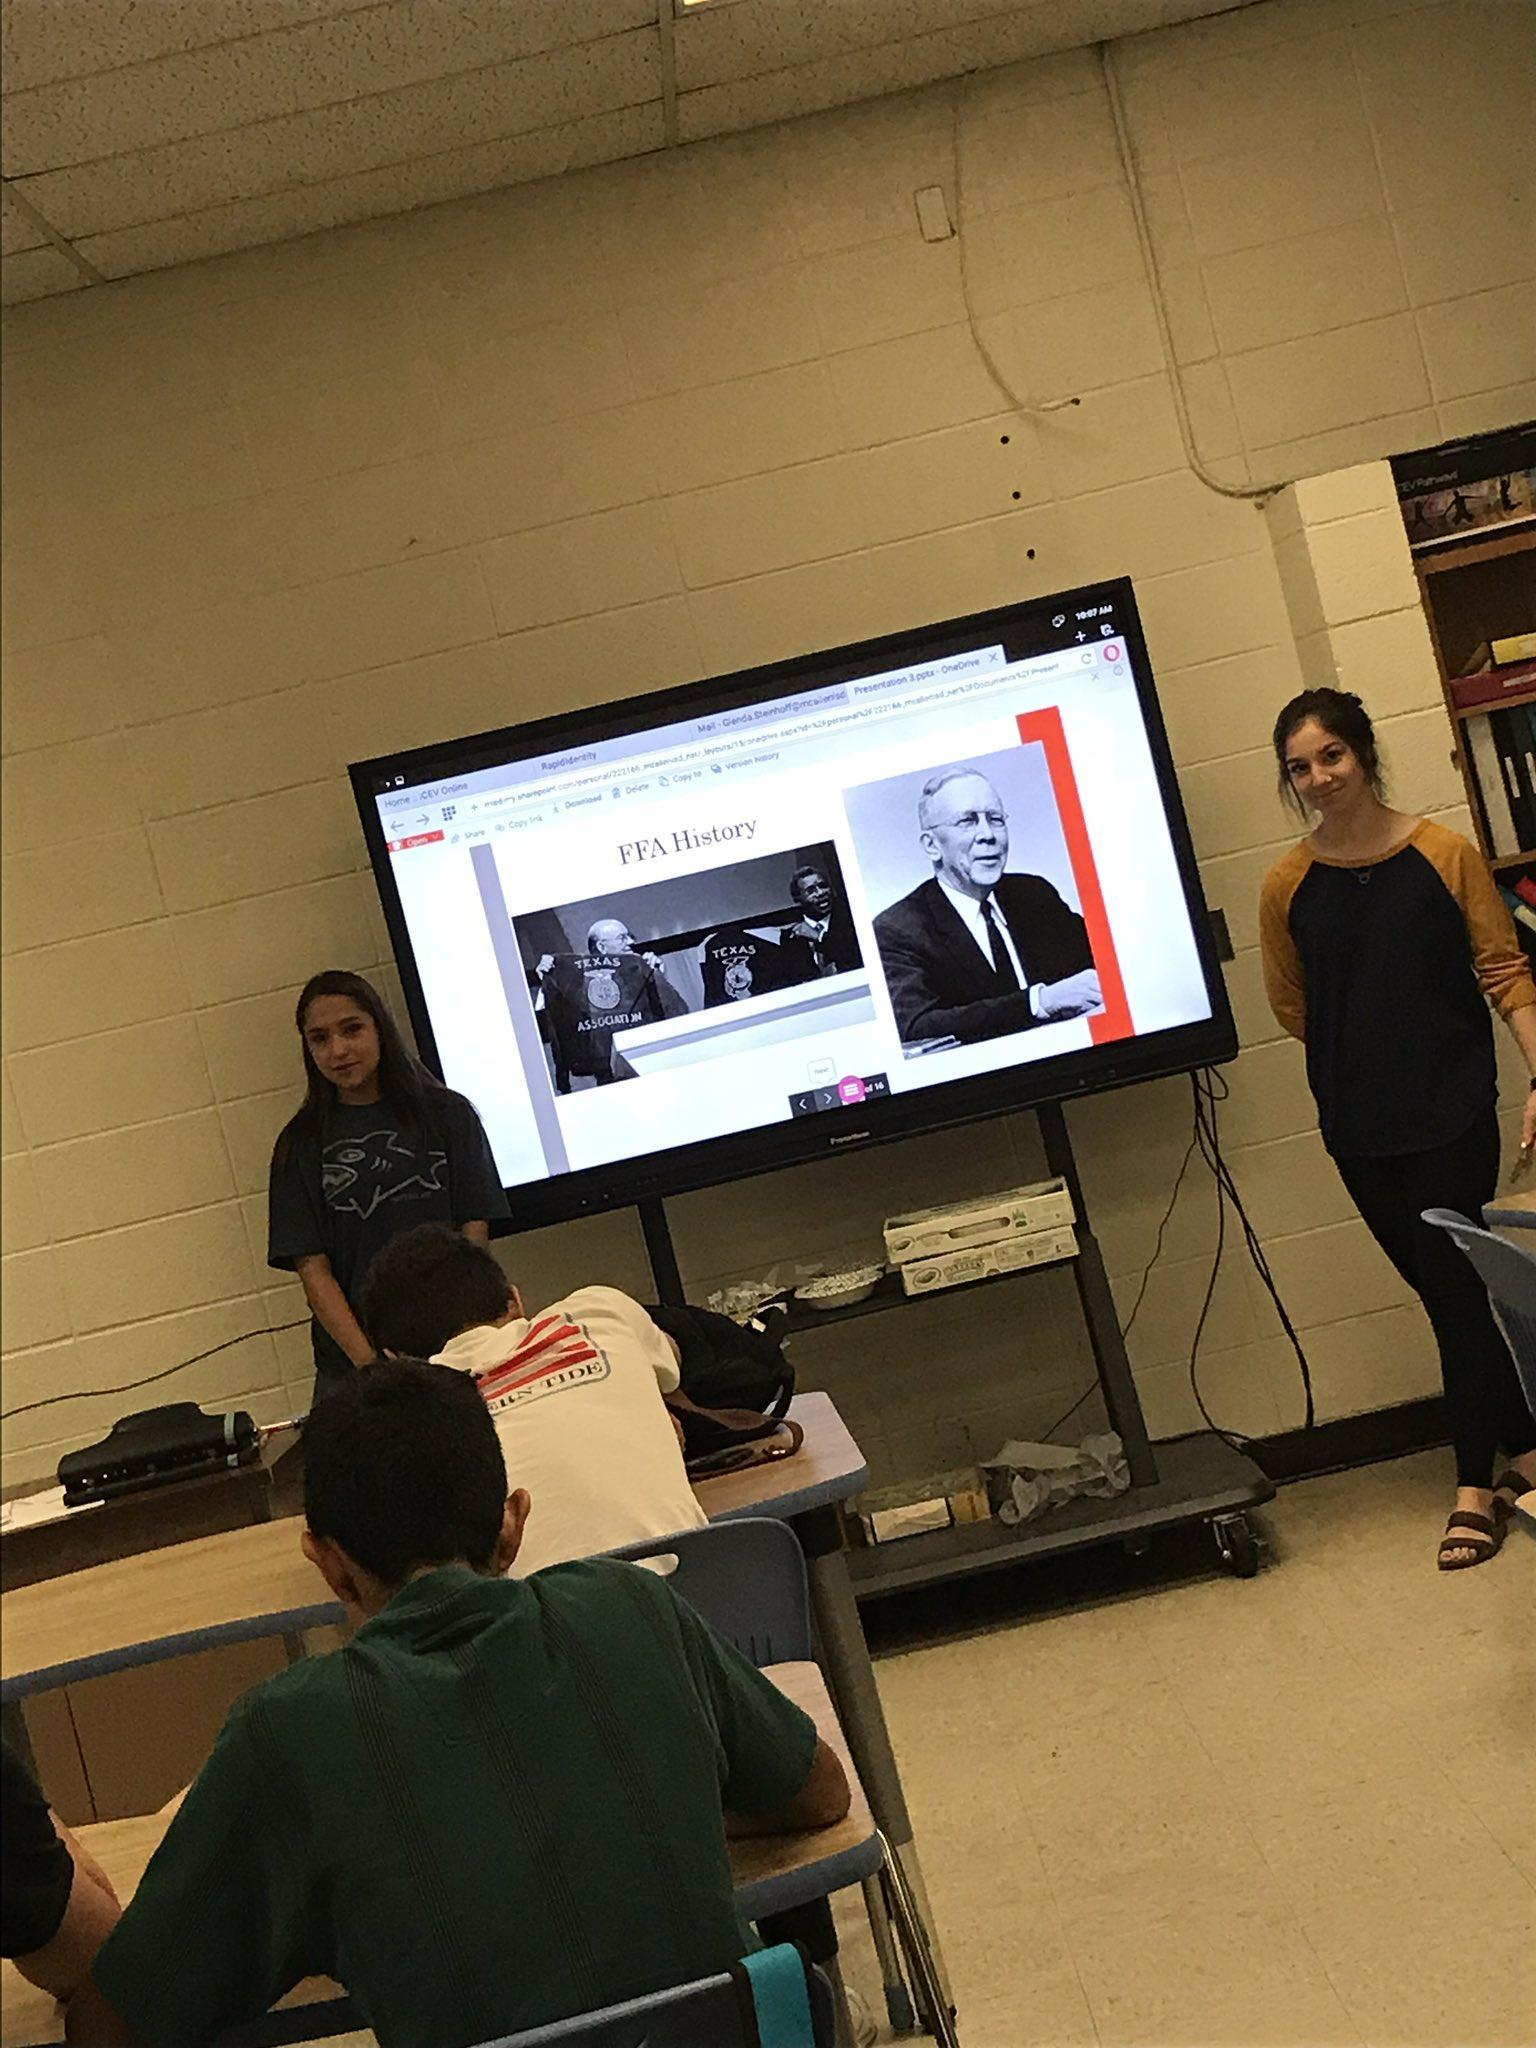 student presenting in front of classroom